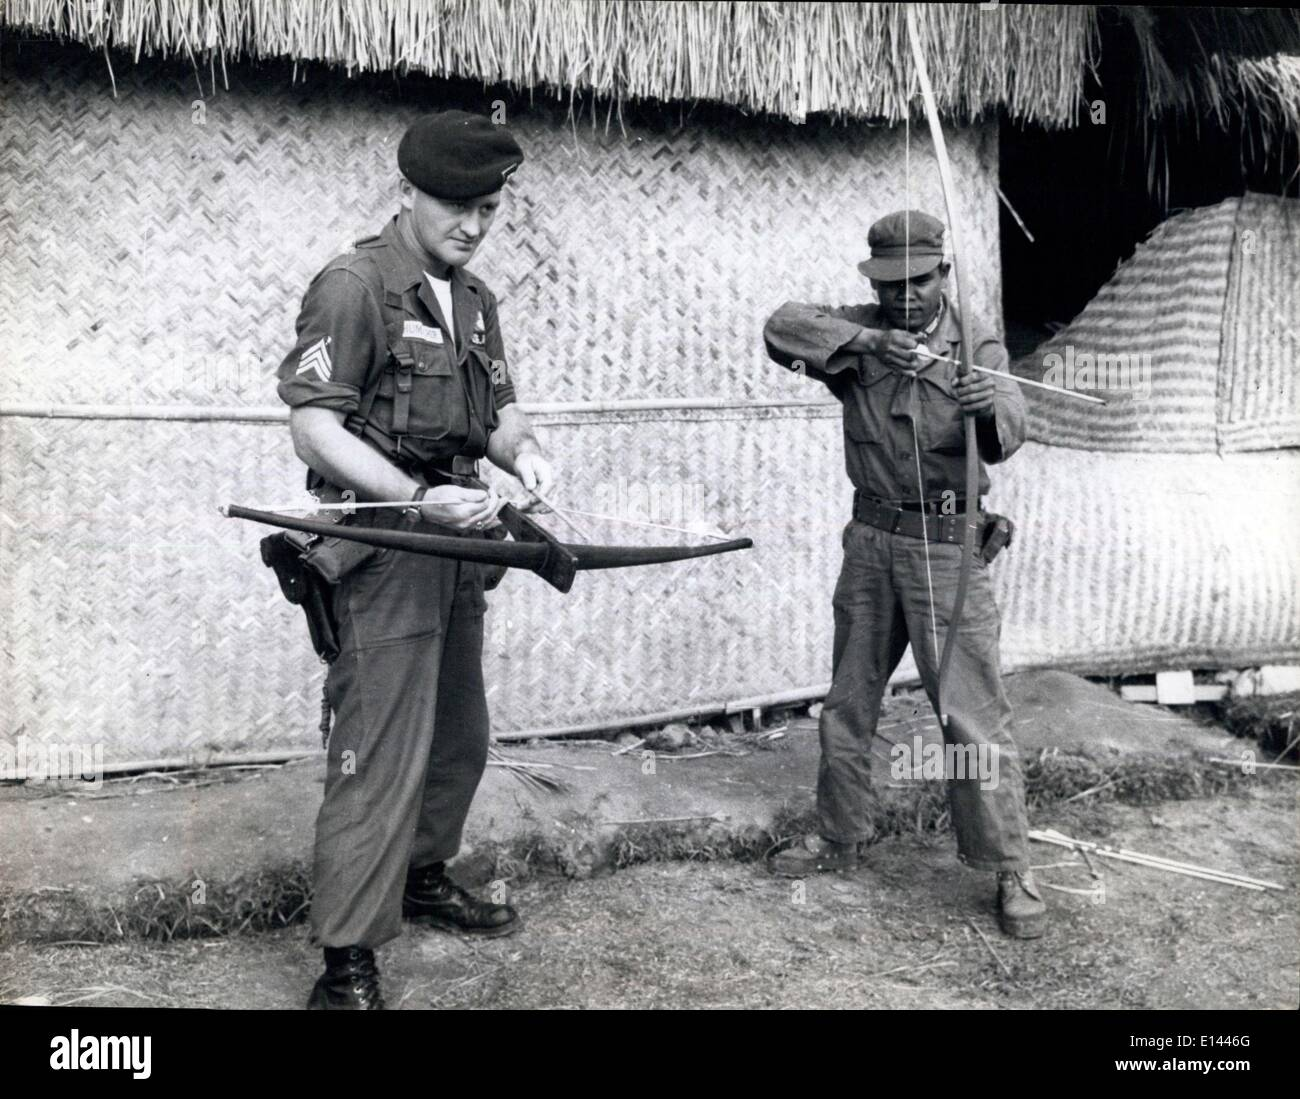 Apr. 04, 2012 - Vietnam, Primitive Weapons An American and Vietnam Soldier try out a cross- bow and a long bow which are made by the village defenders. - Stock Image